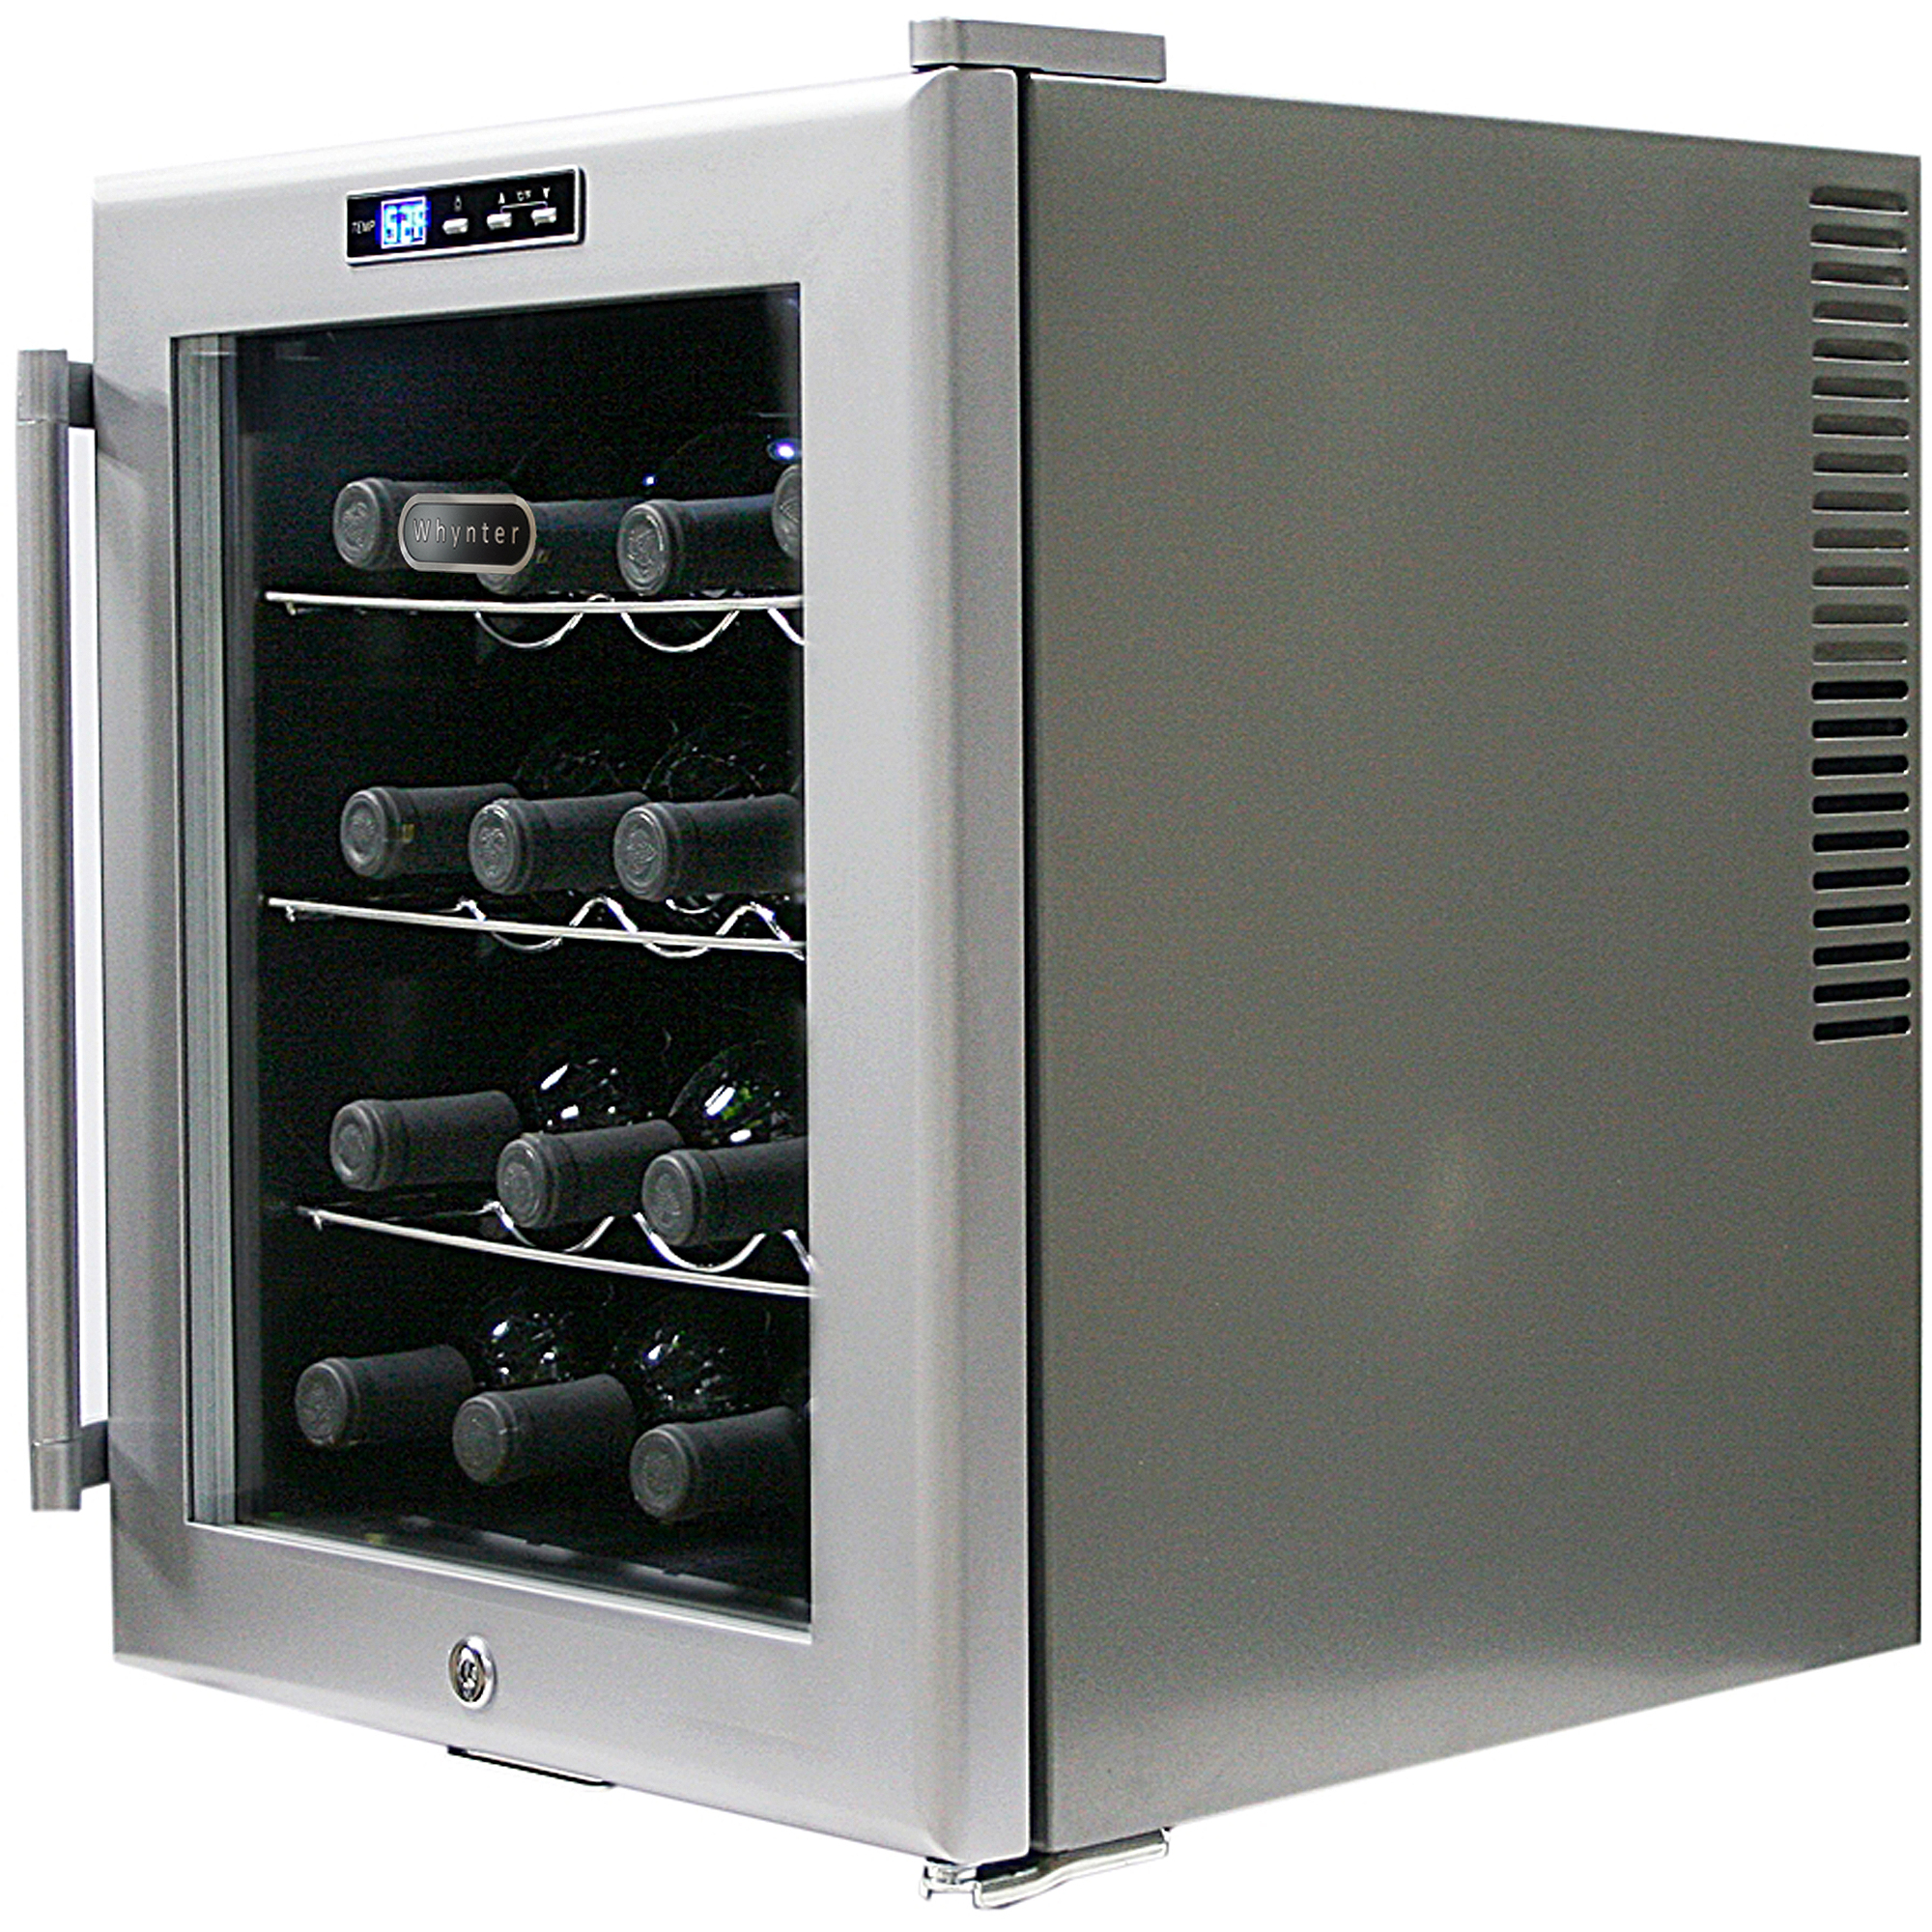 Whynter SNO WC-16S 16-Bottle Wine Cooler with Lock